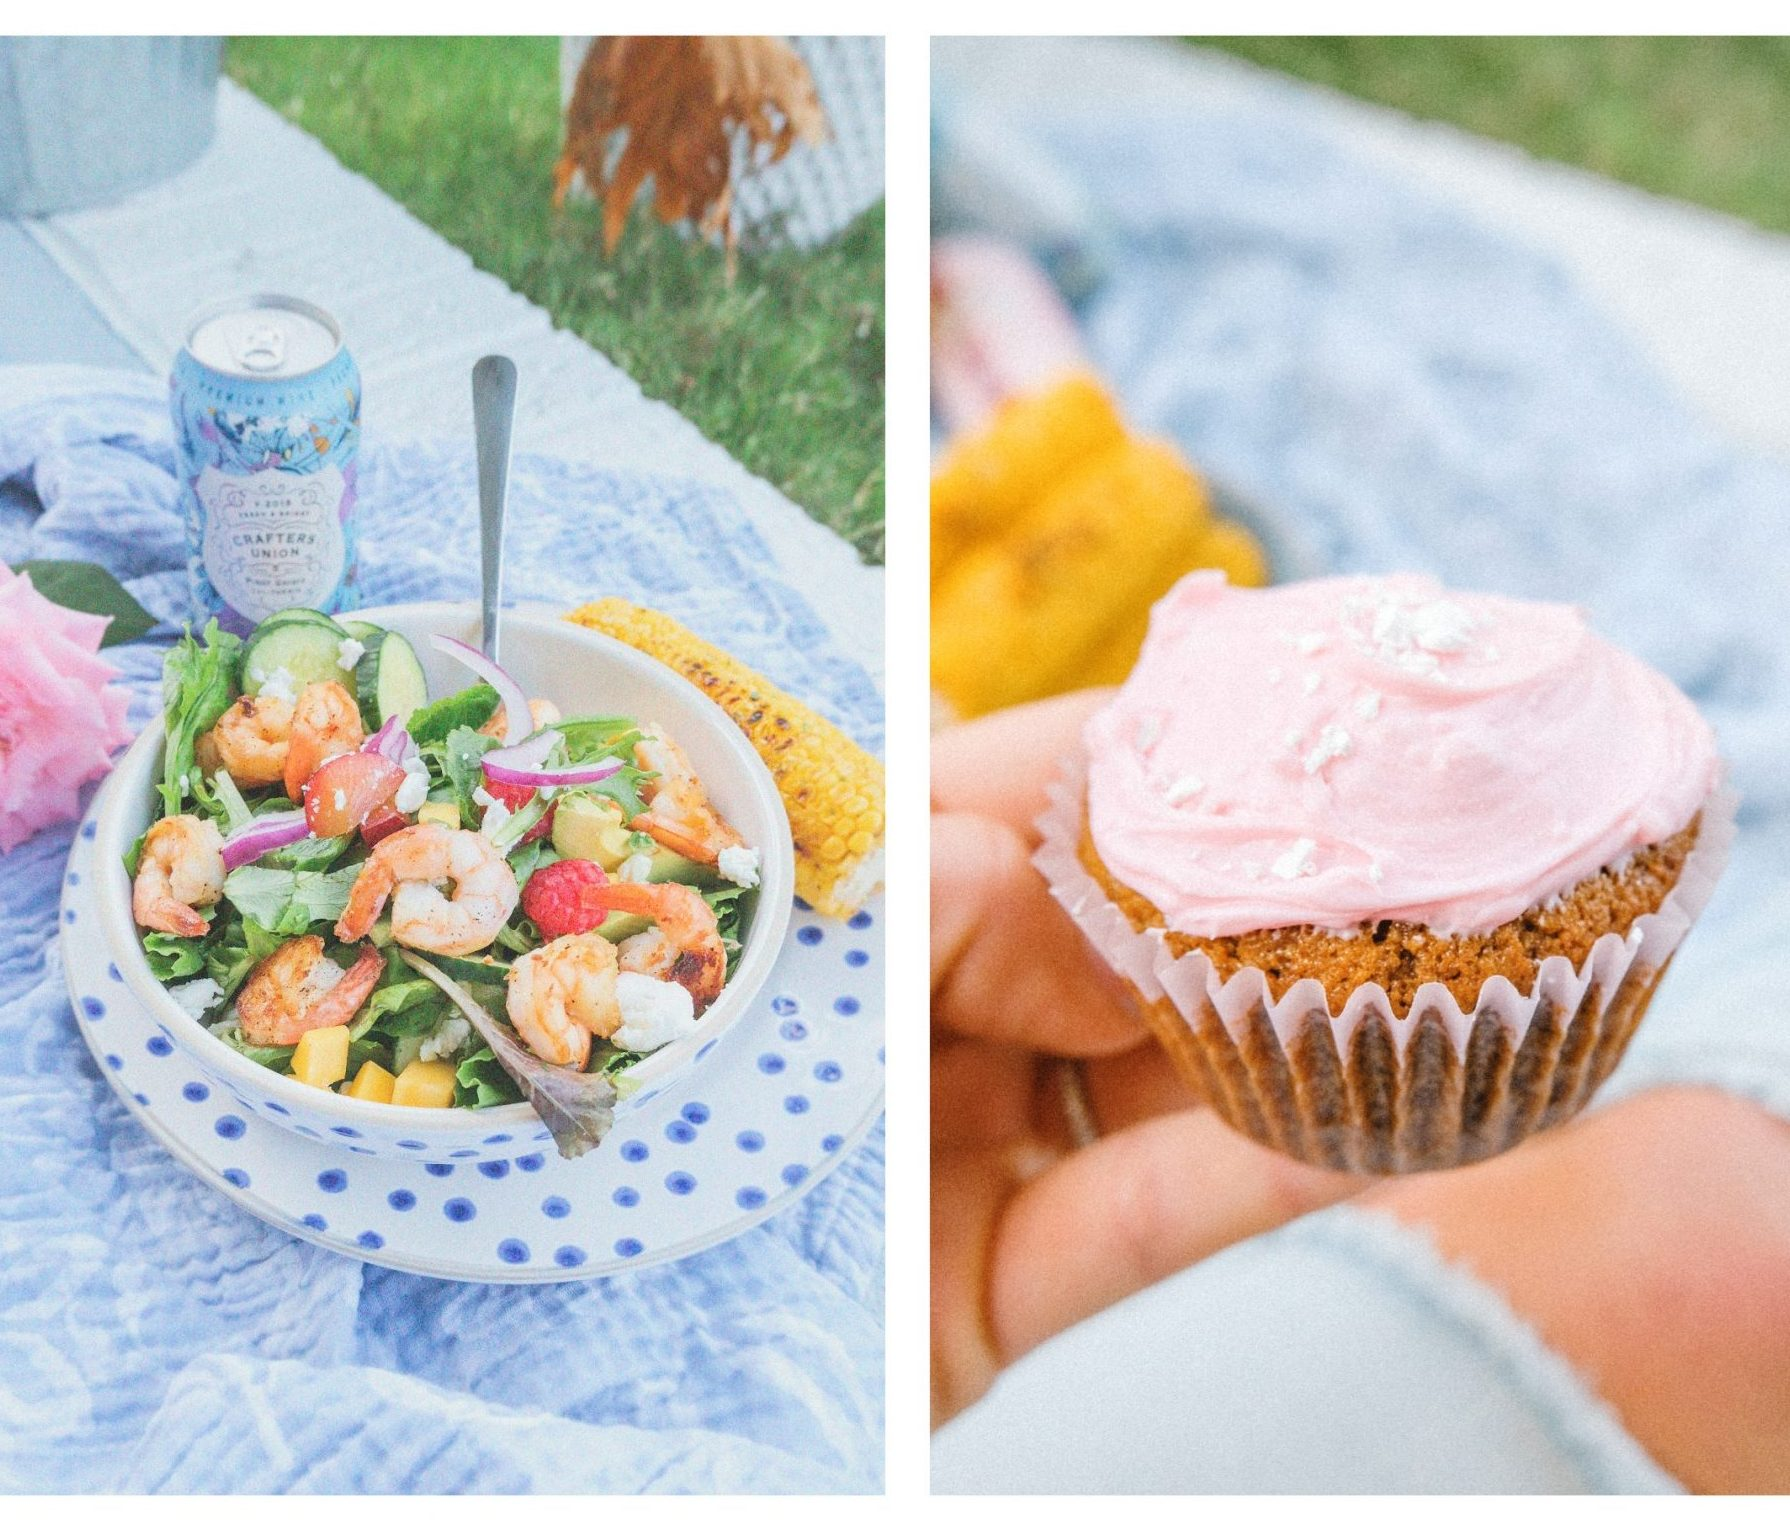 salad, shrimp, backyard, picnic, gluten free, summer, shrimp salad, healthy dinner, cupcakes, corn on the cob, goat cheese, healthy, cupcakes